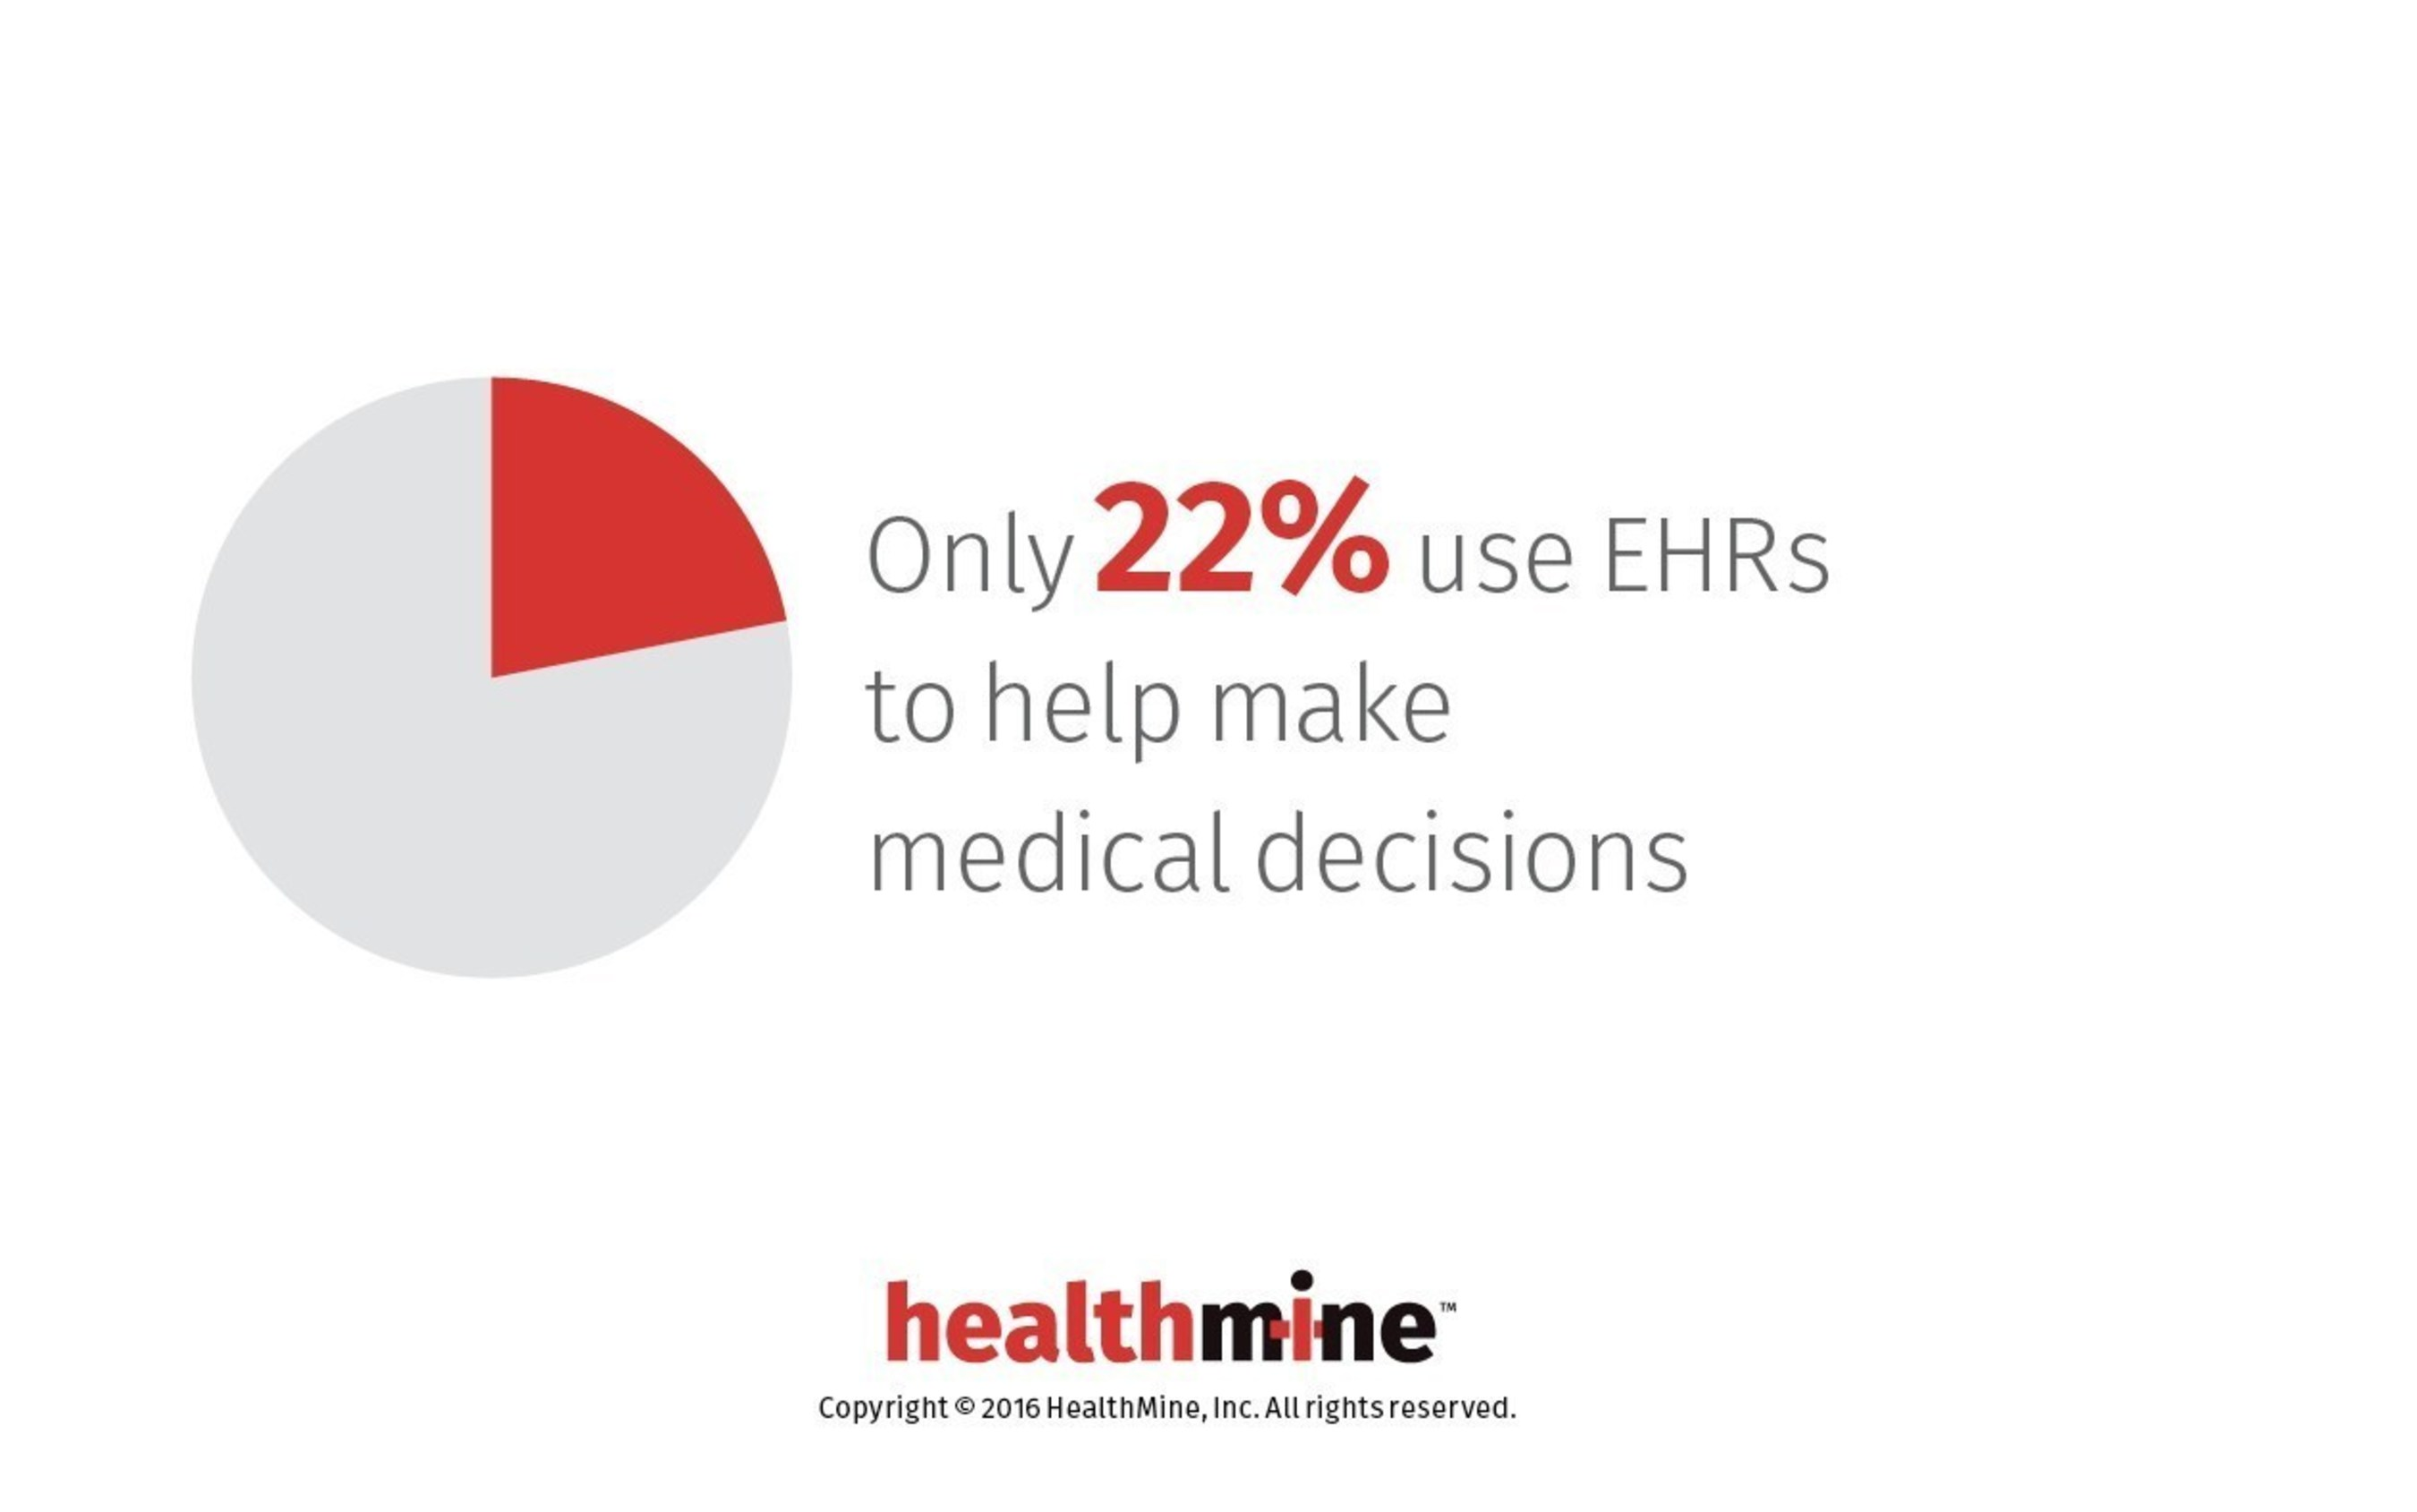 60% of Digital Health Users Say They Have An Electronic